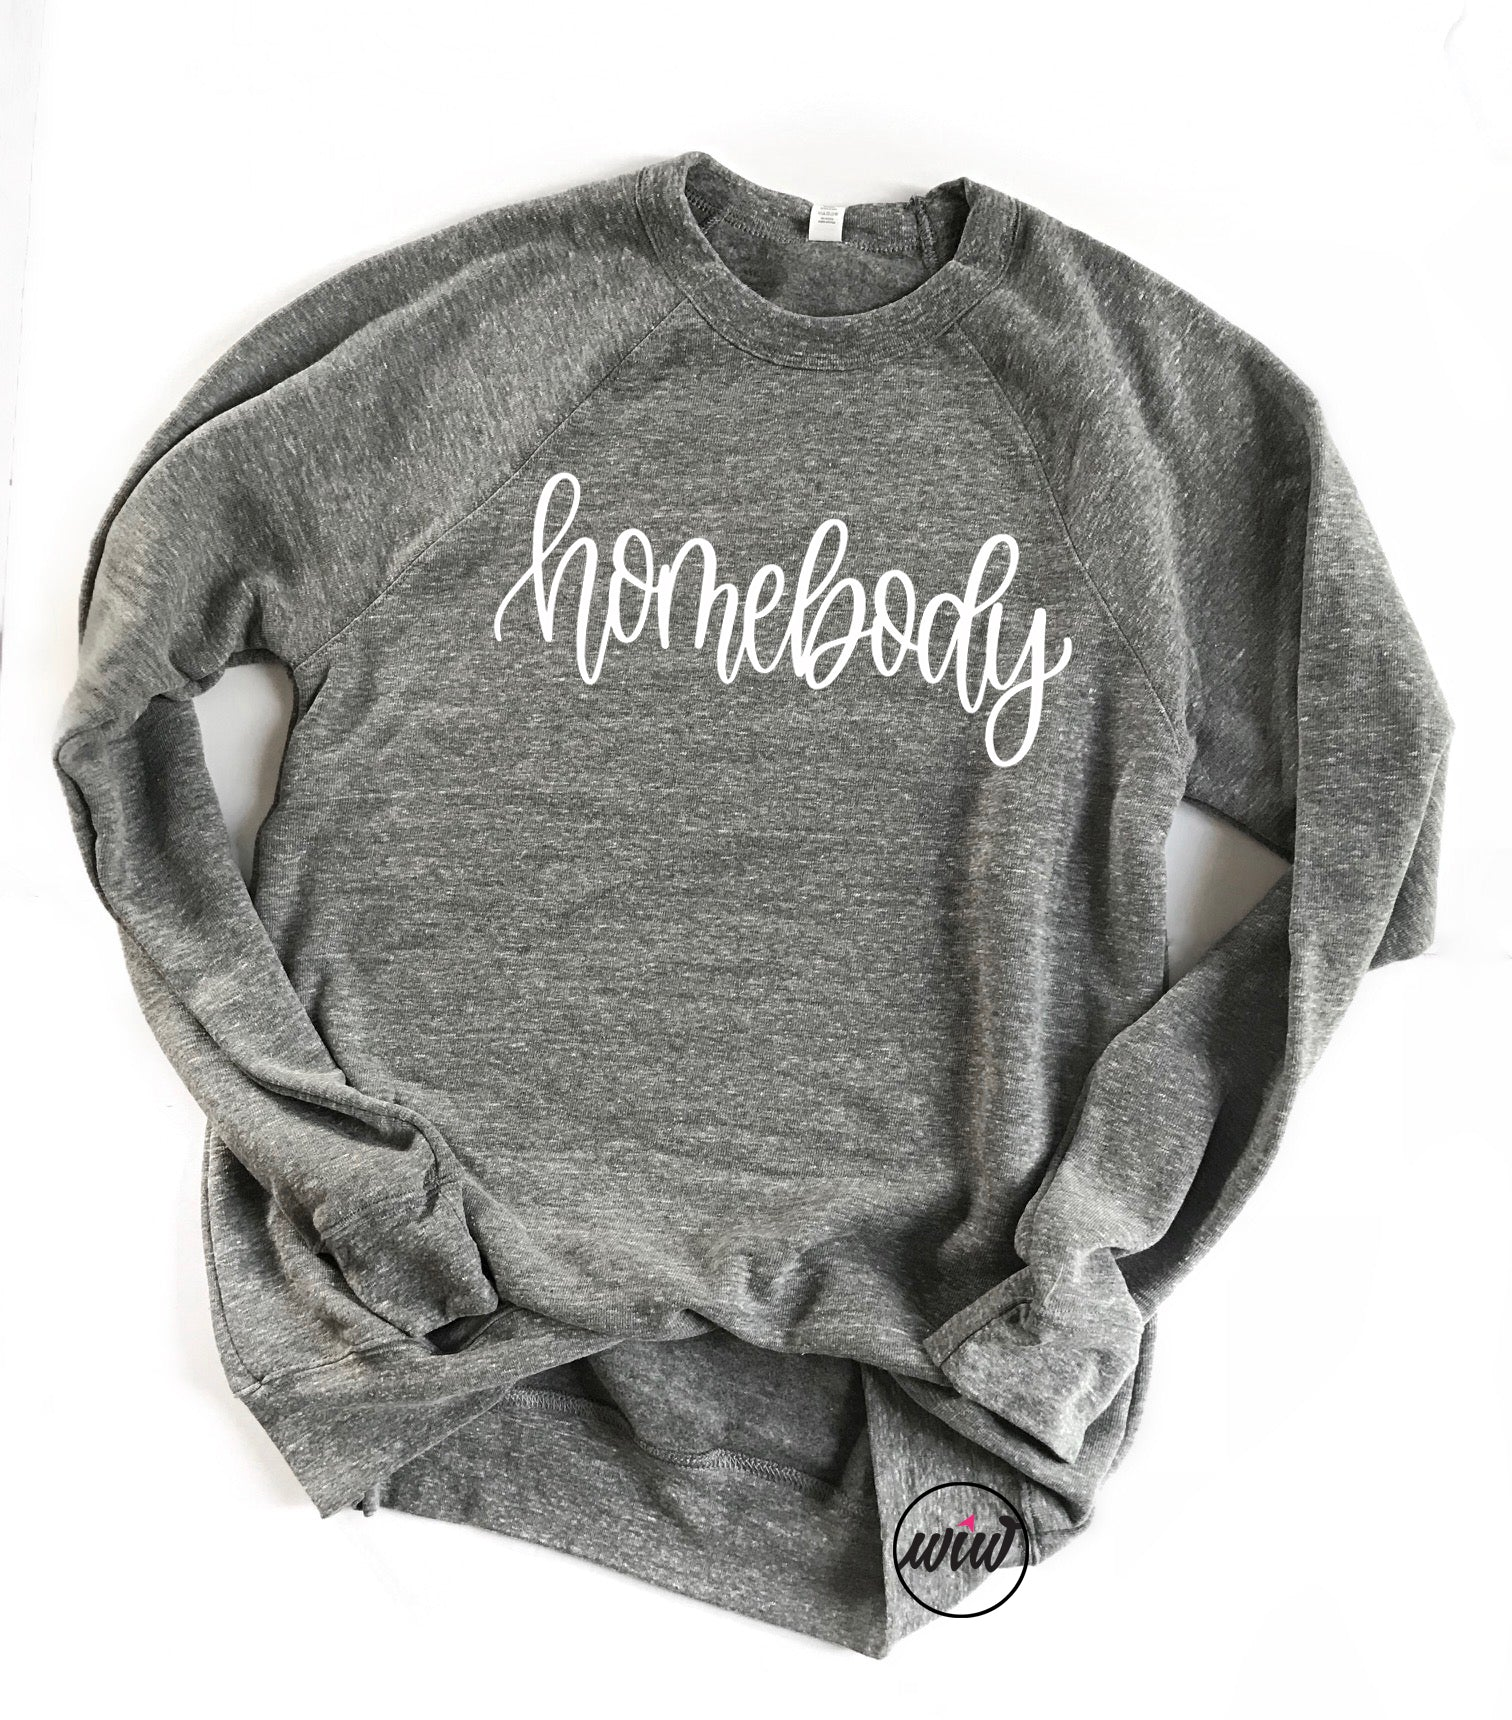 Homebody Crewneck Sweatshirt. Introvert Shirt. Too Peopley Outside. Stay at Home. Can't Adult. Lazy Day Cozy AF. Preggers.